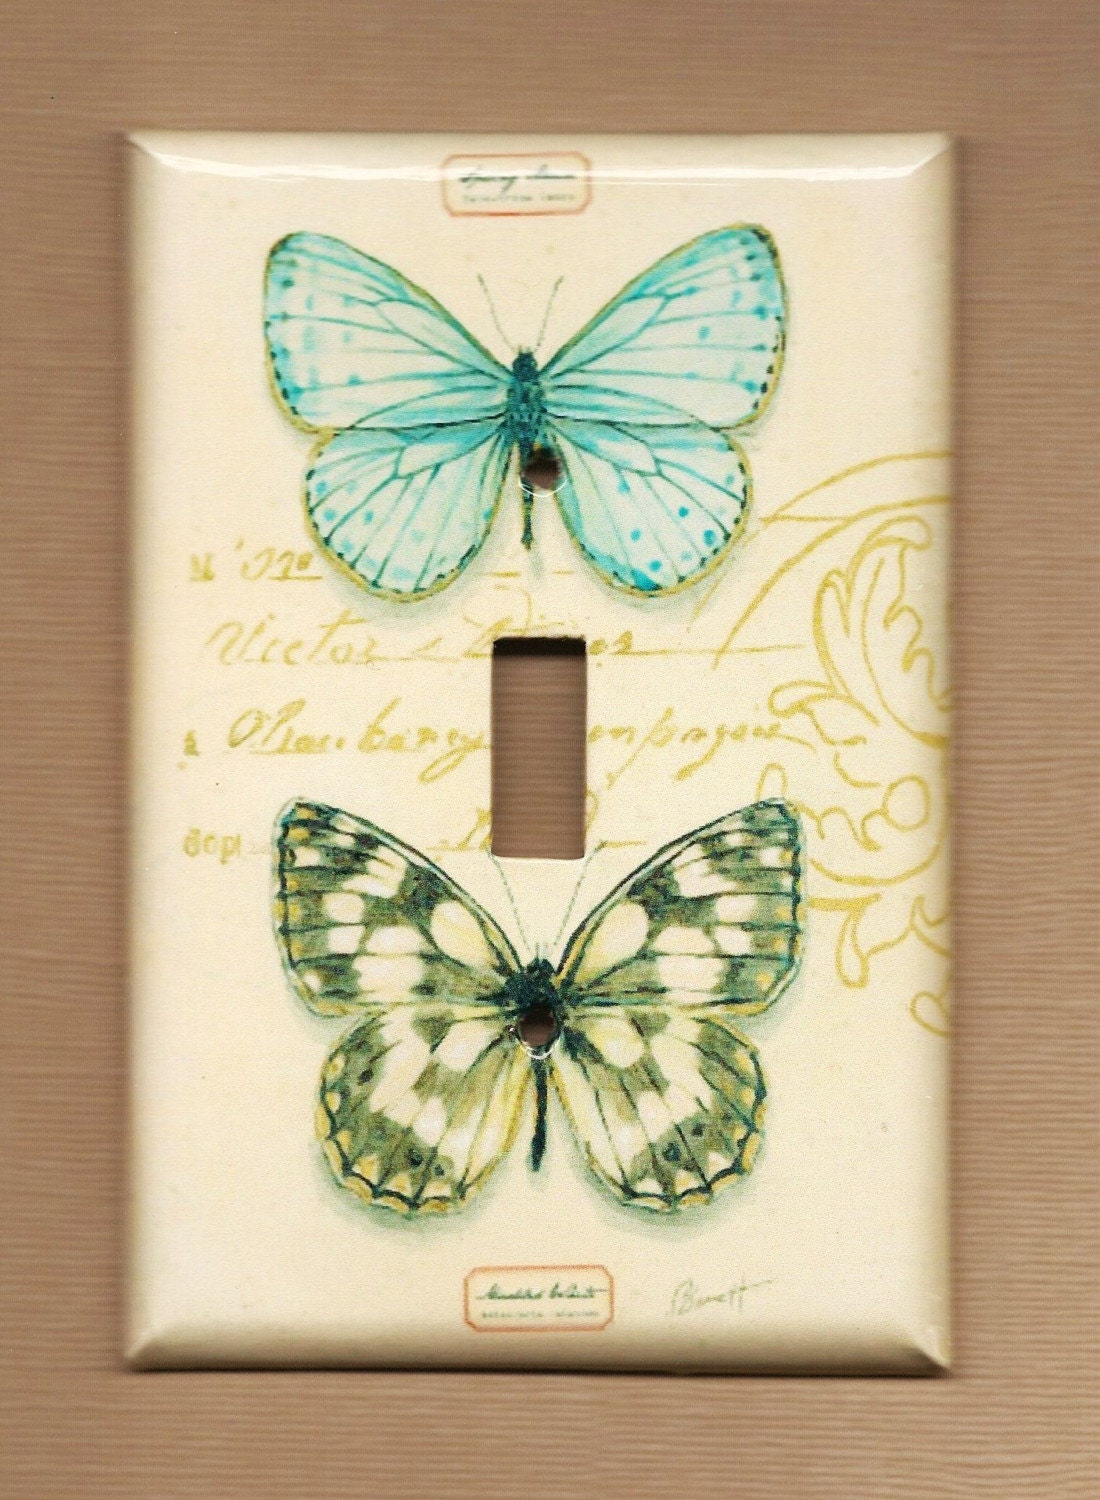 Butterflies are Forever Switch Plate cover